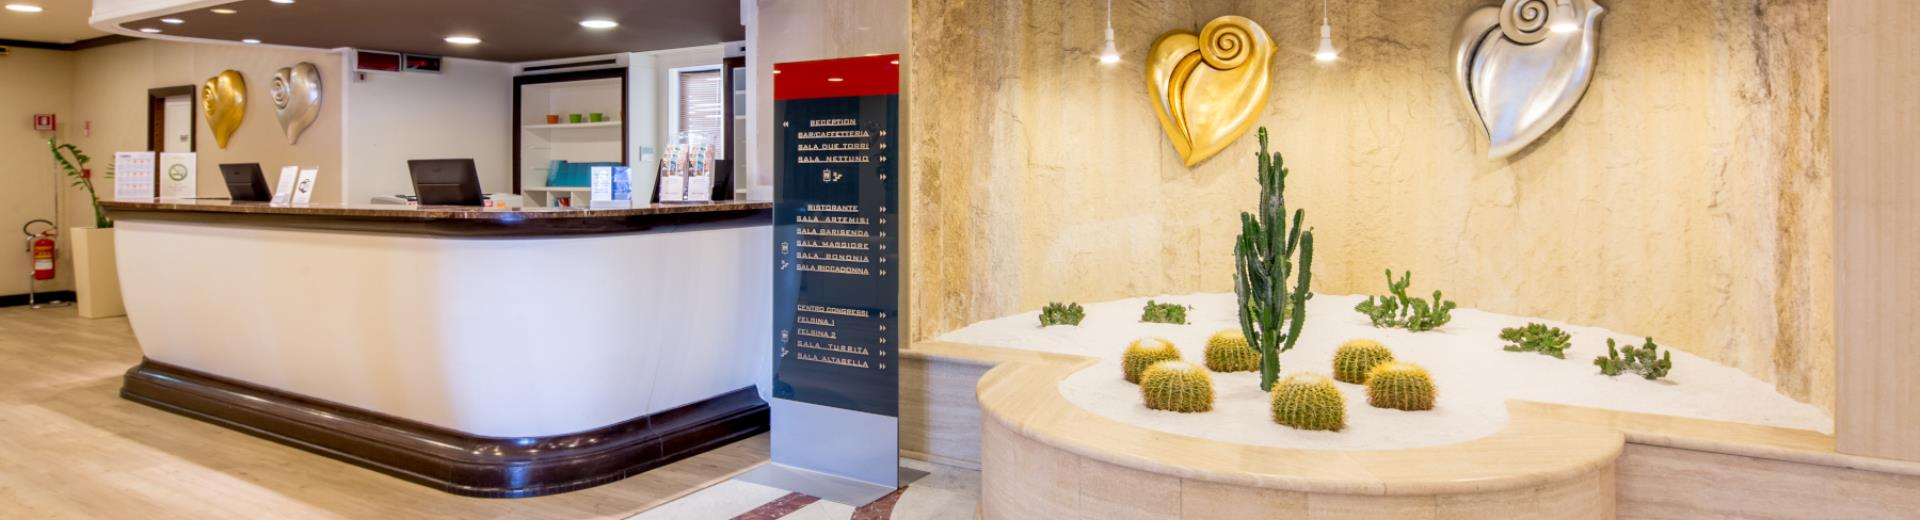 Best Western Plus Tower Hotel Bologna - 4 star Hotel in Bologna